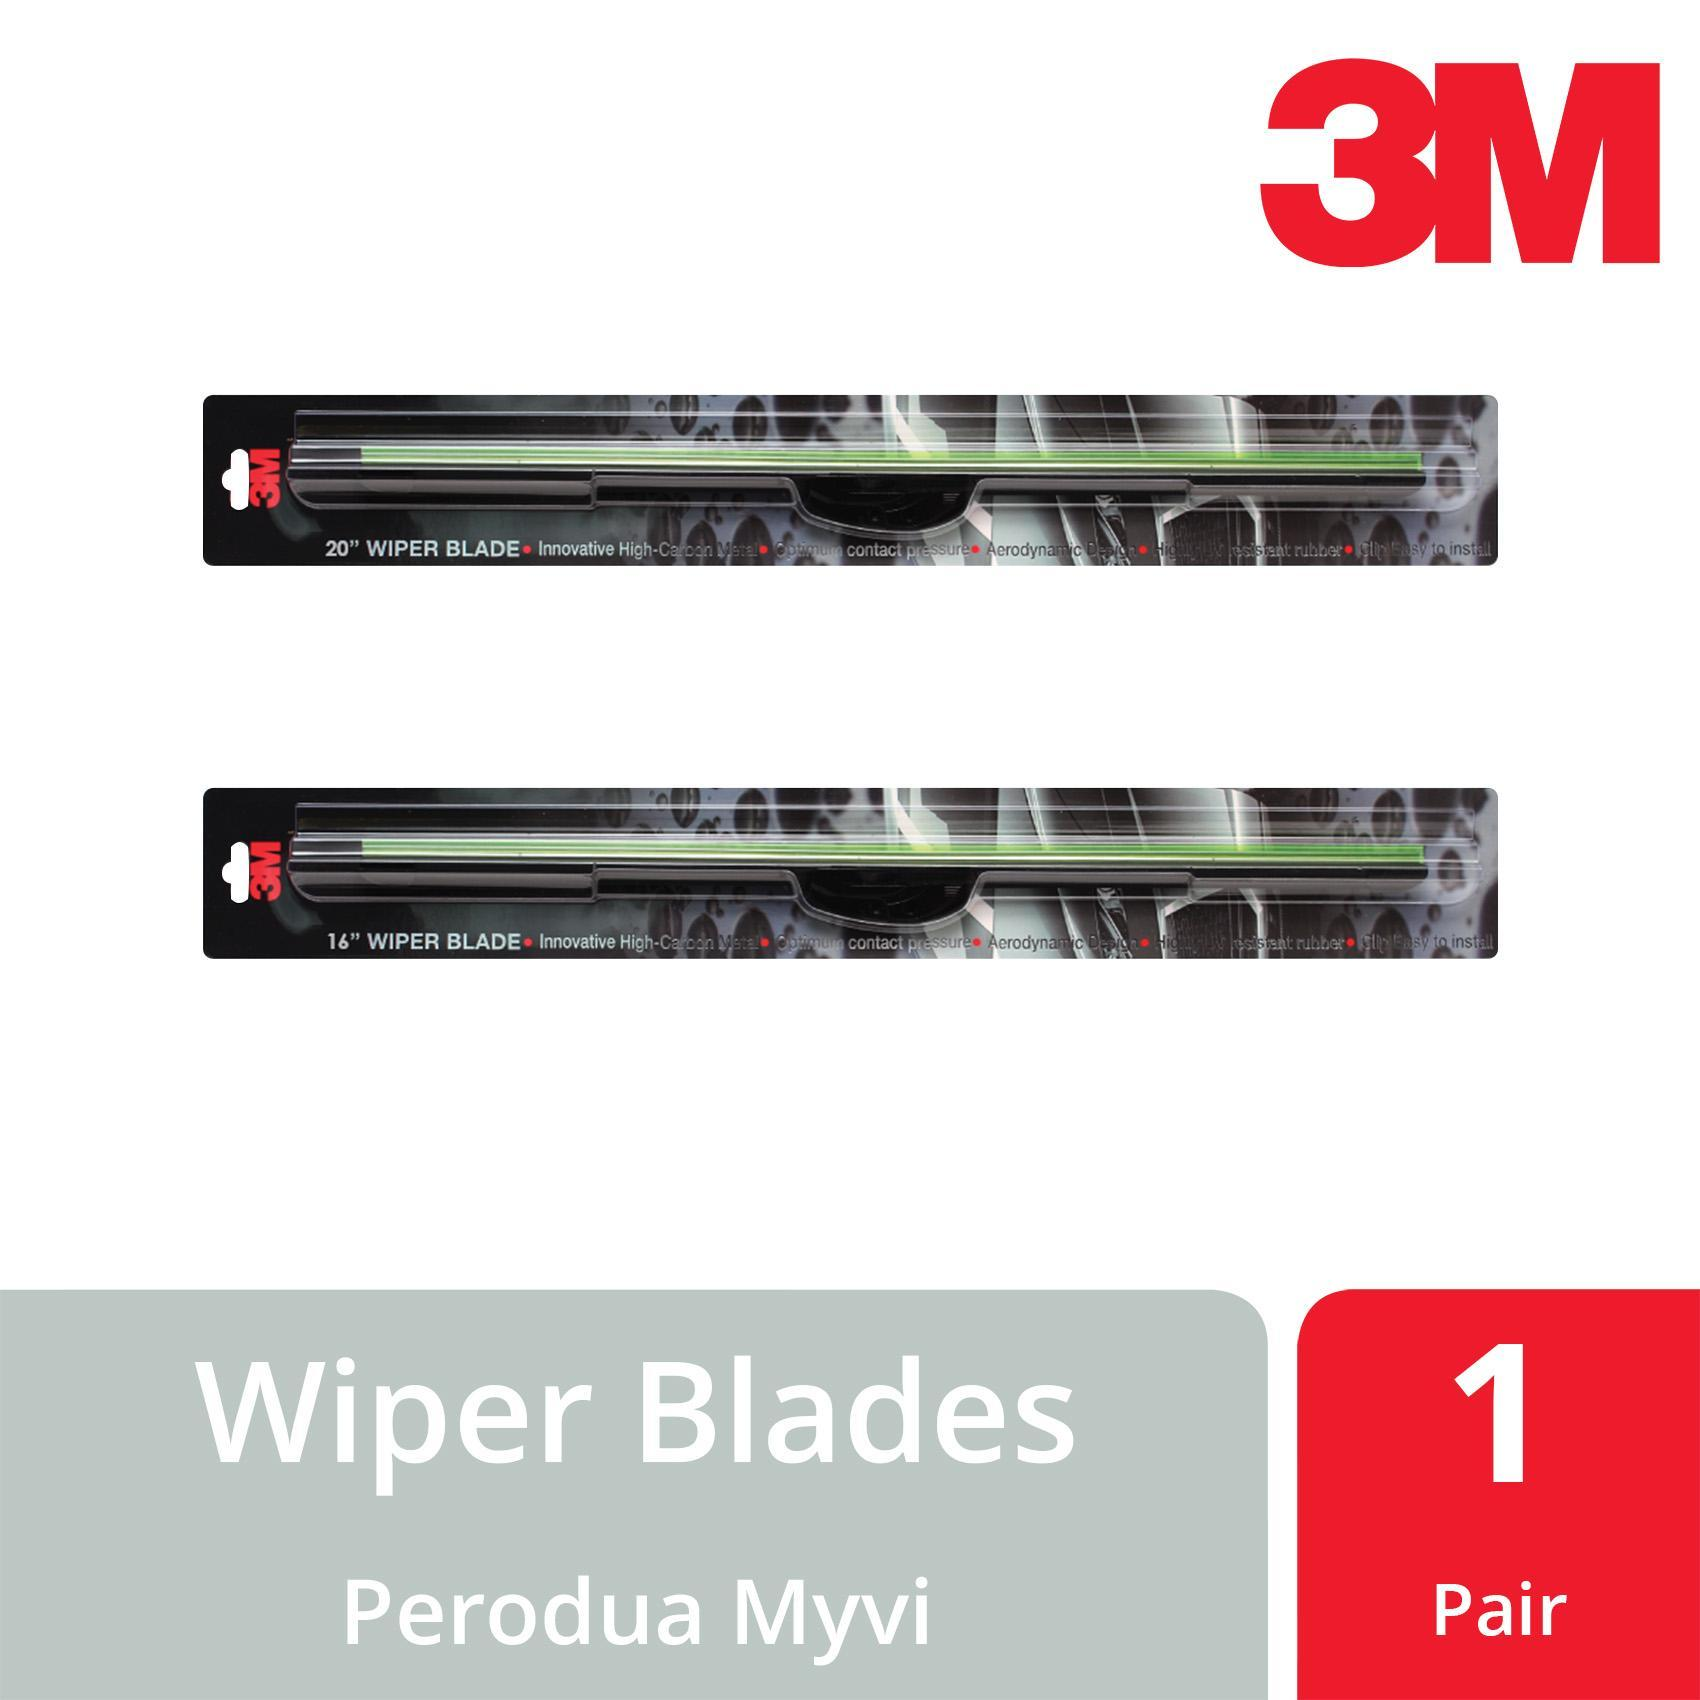 3m Frameless Wiper Blade 20 (per Pcs) By Bankable Marketing Shop.